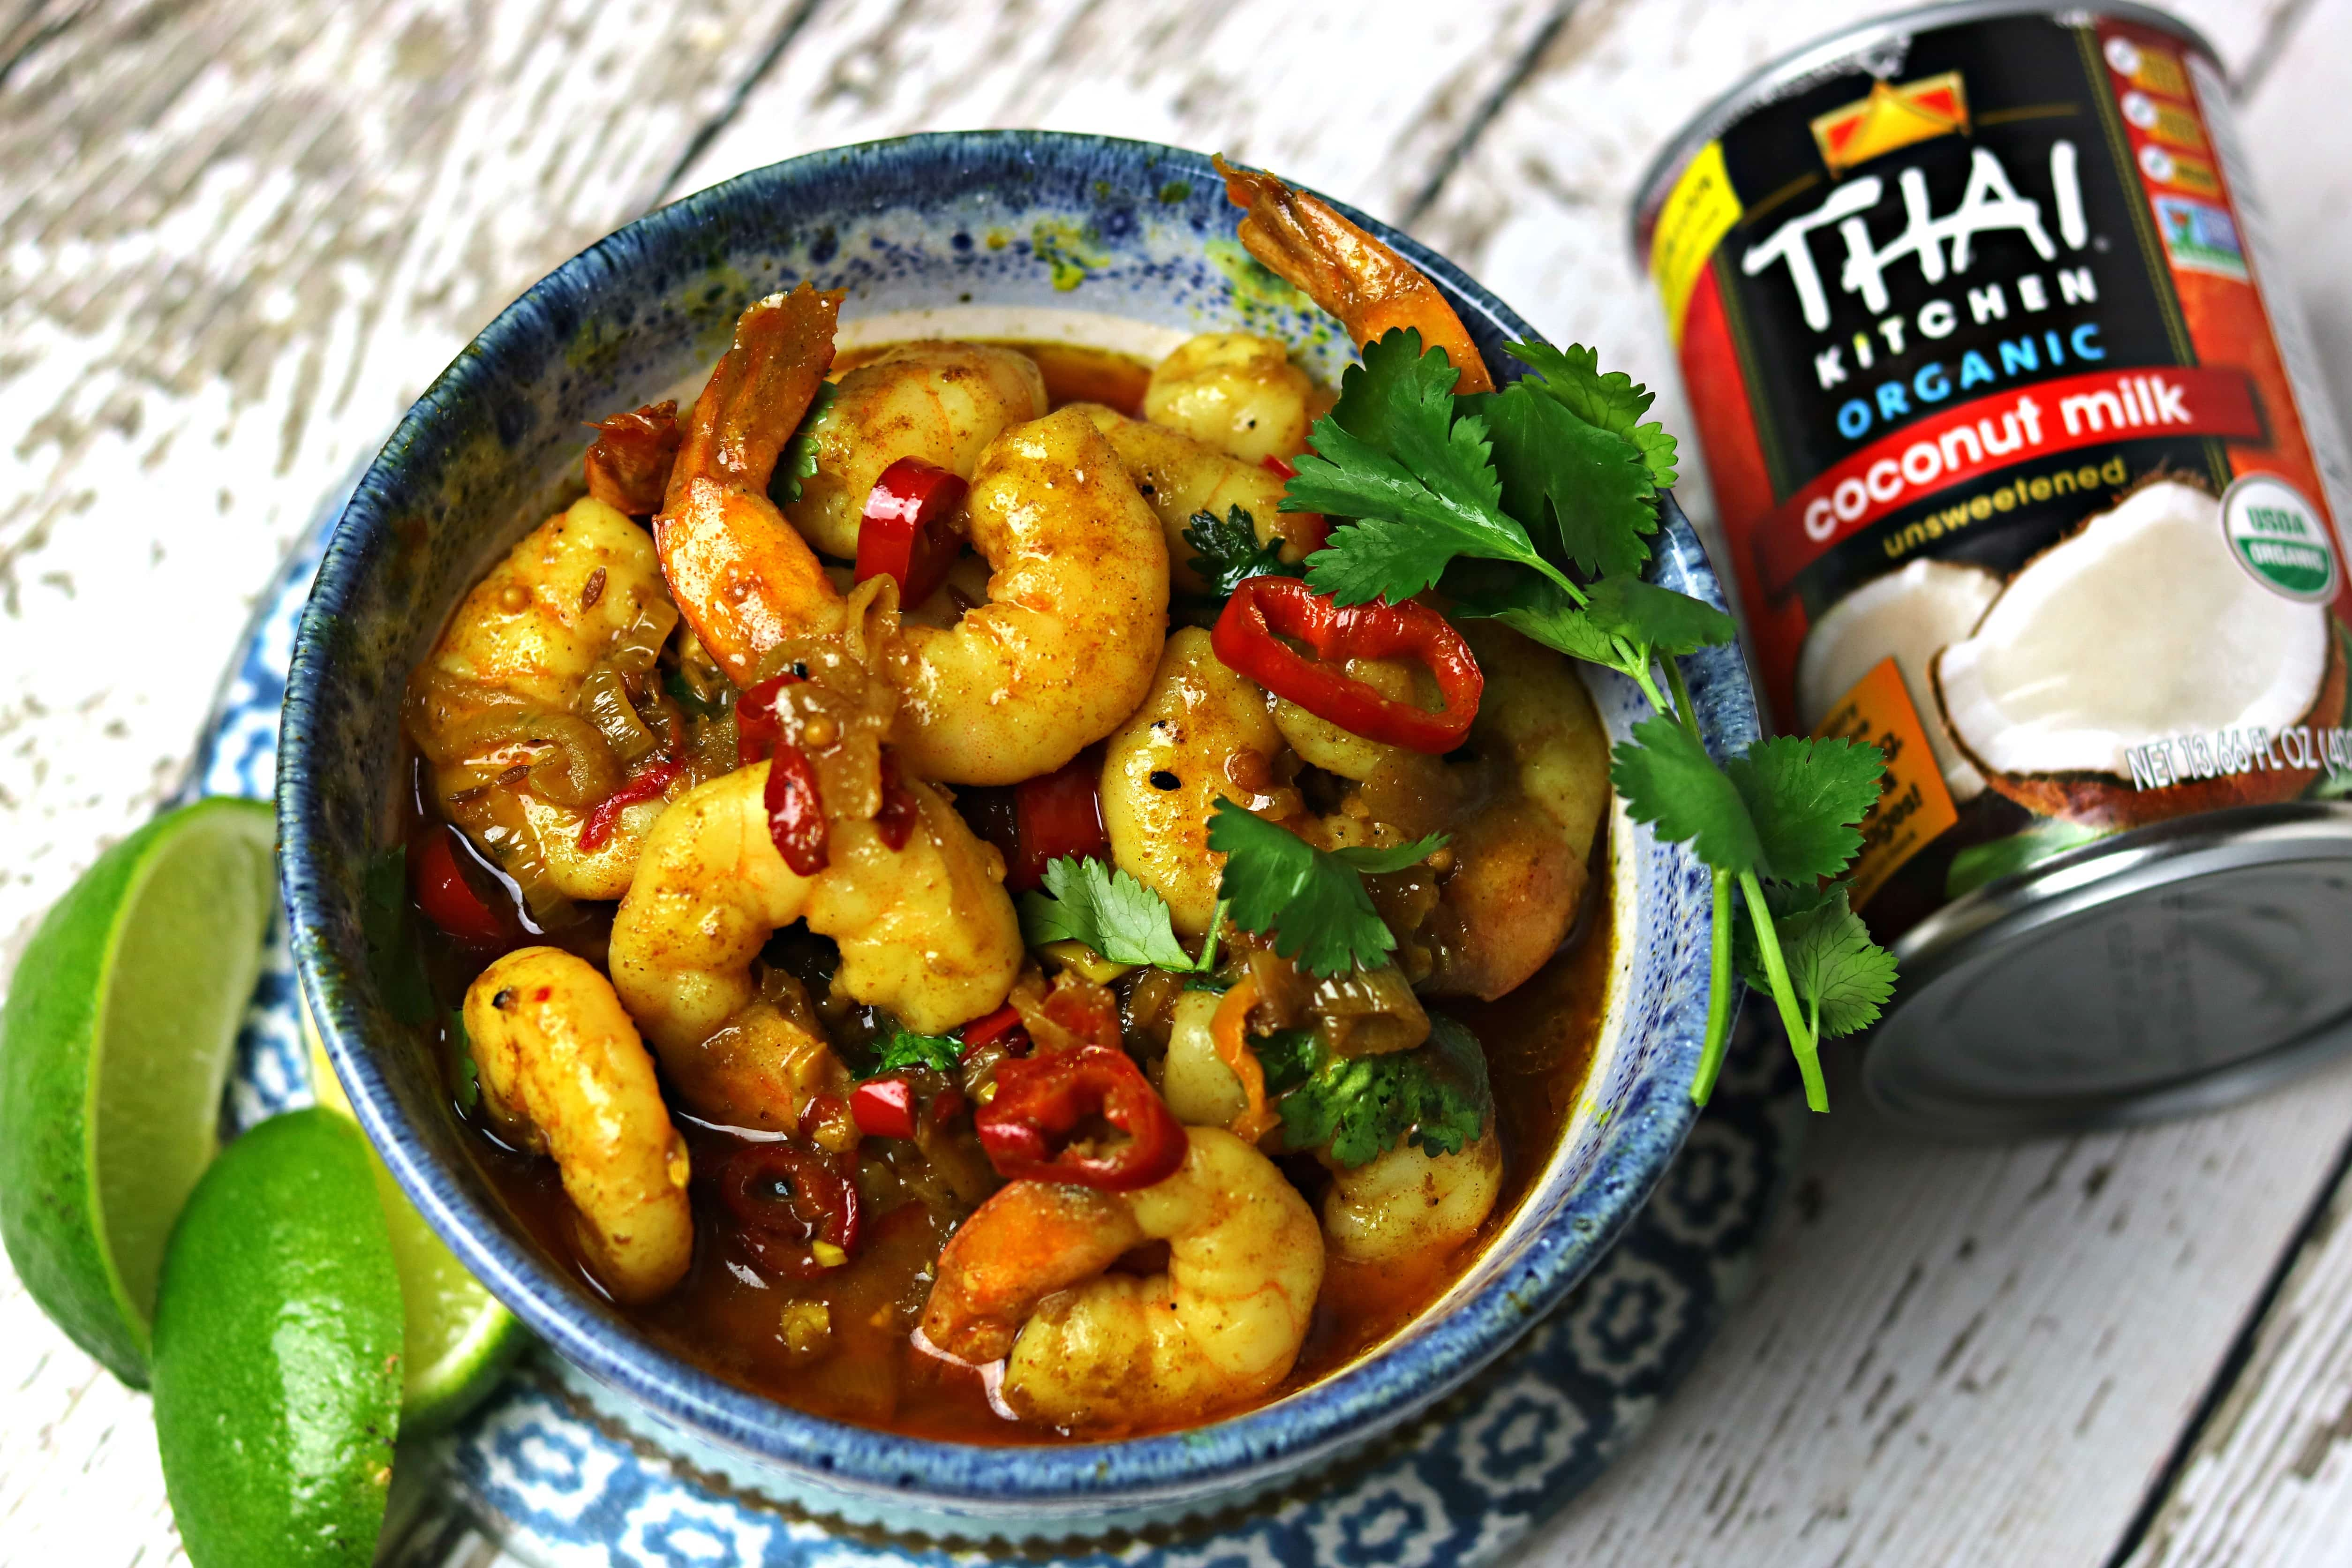 Indian Shrimp Curry recipe in a bowl with limes and coconut milk next to it